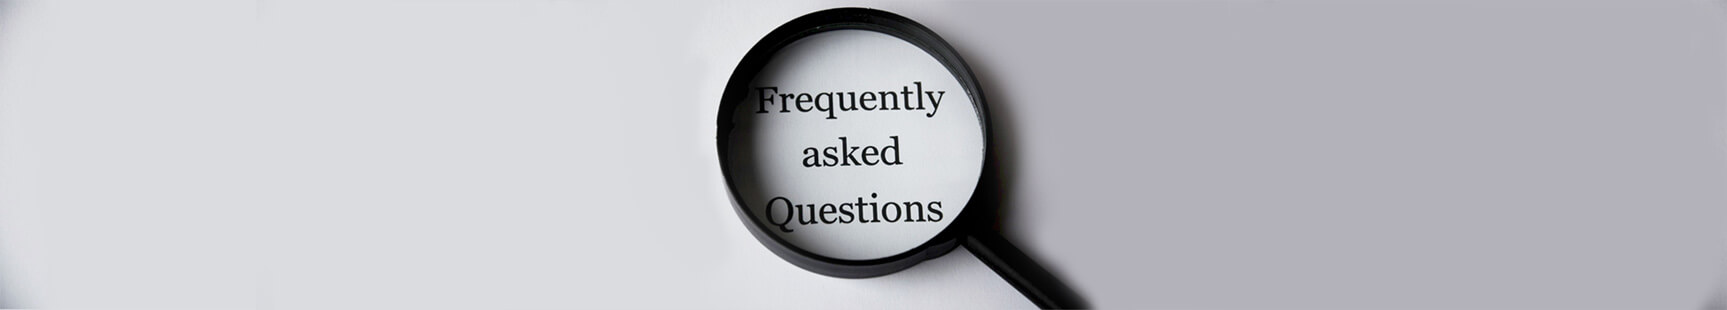 Real Meat Africa FAQs Frequently Asked Questions